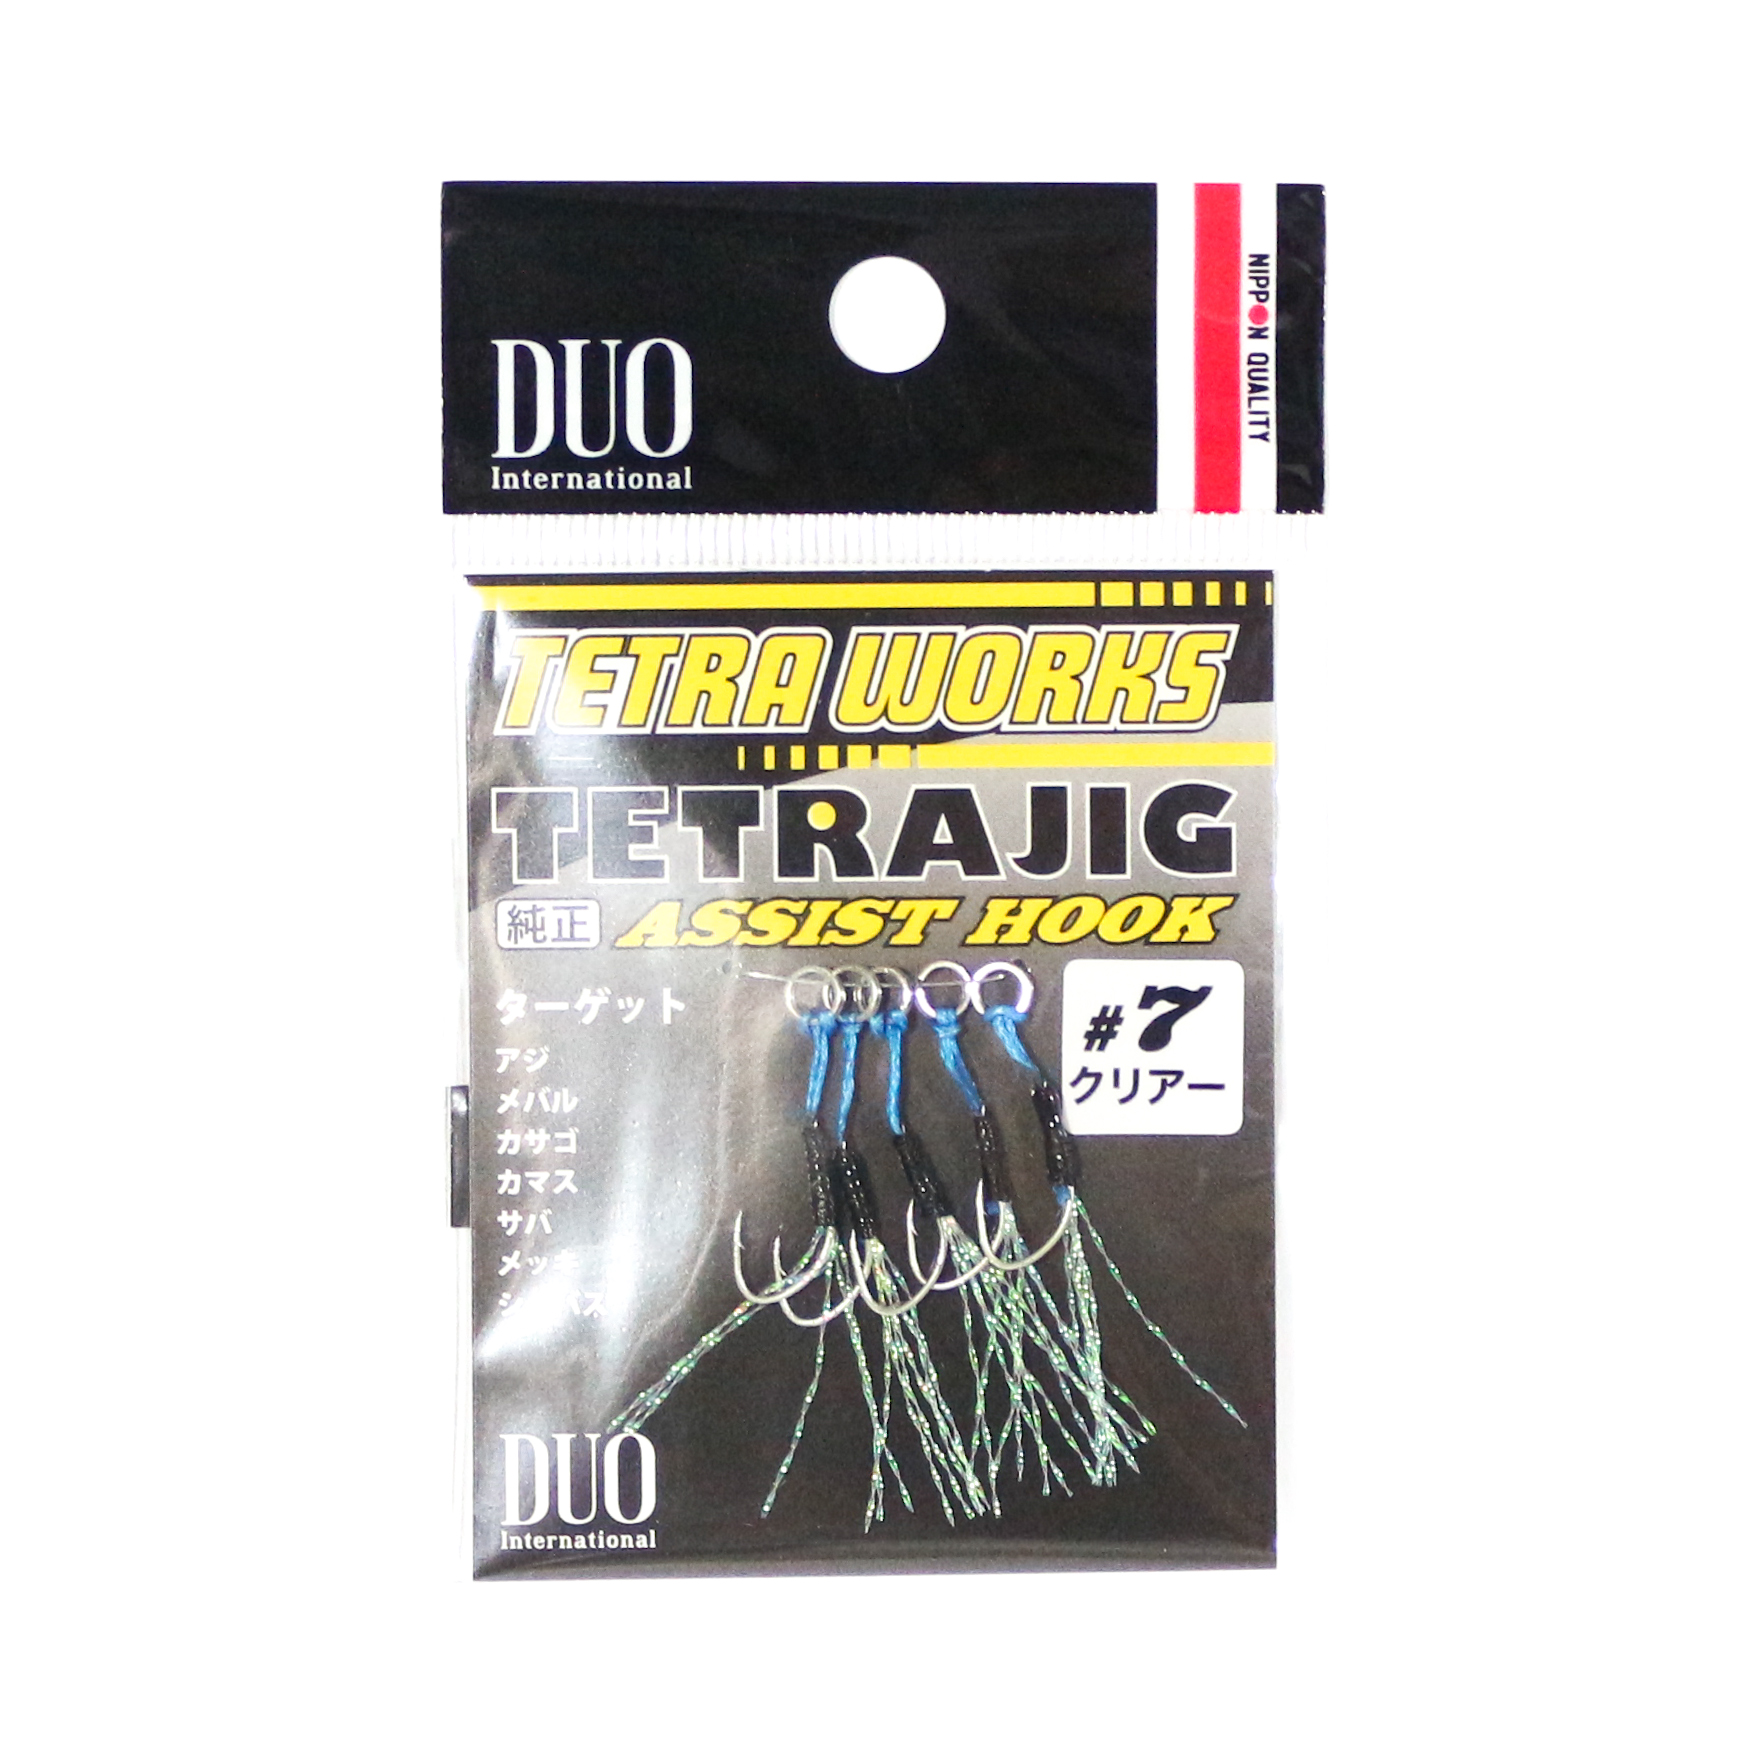 Duo Assist Hooks Tetra Works Crystal Flash Size 7, 5 piece per pack #7 (3330)